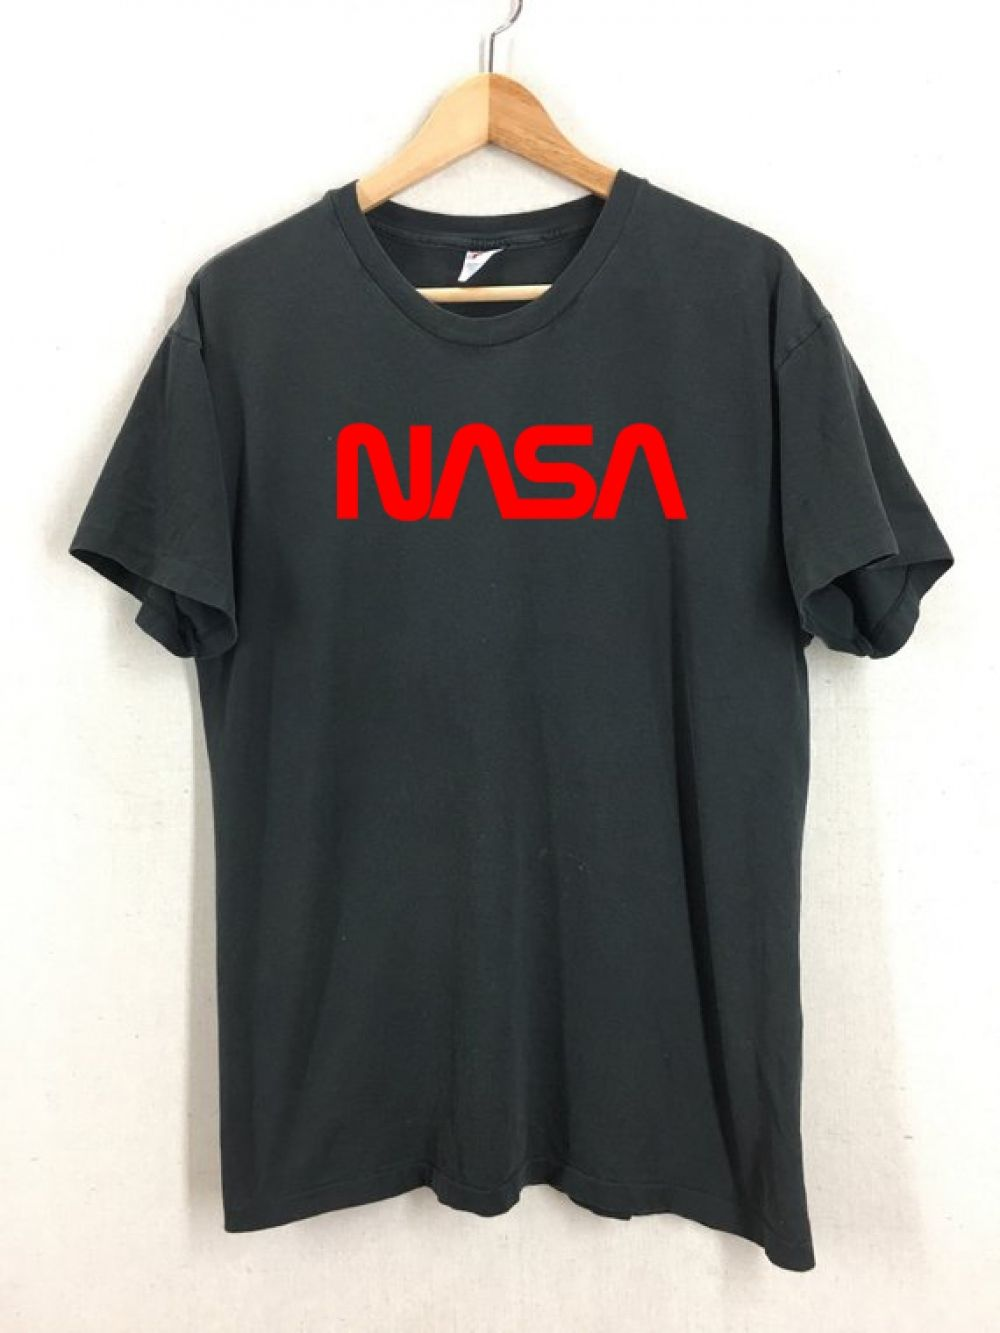 Adult Unisex Size S 3xl For Men And Women Price 15 99 Shirts